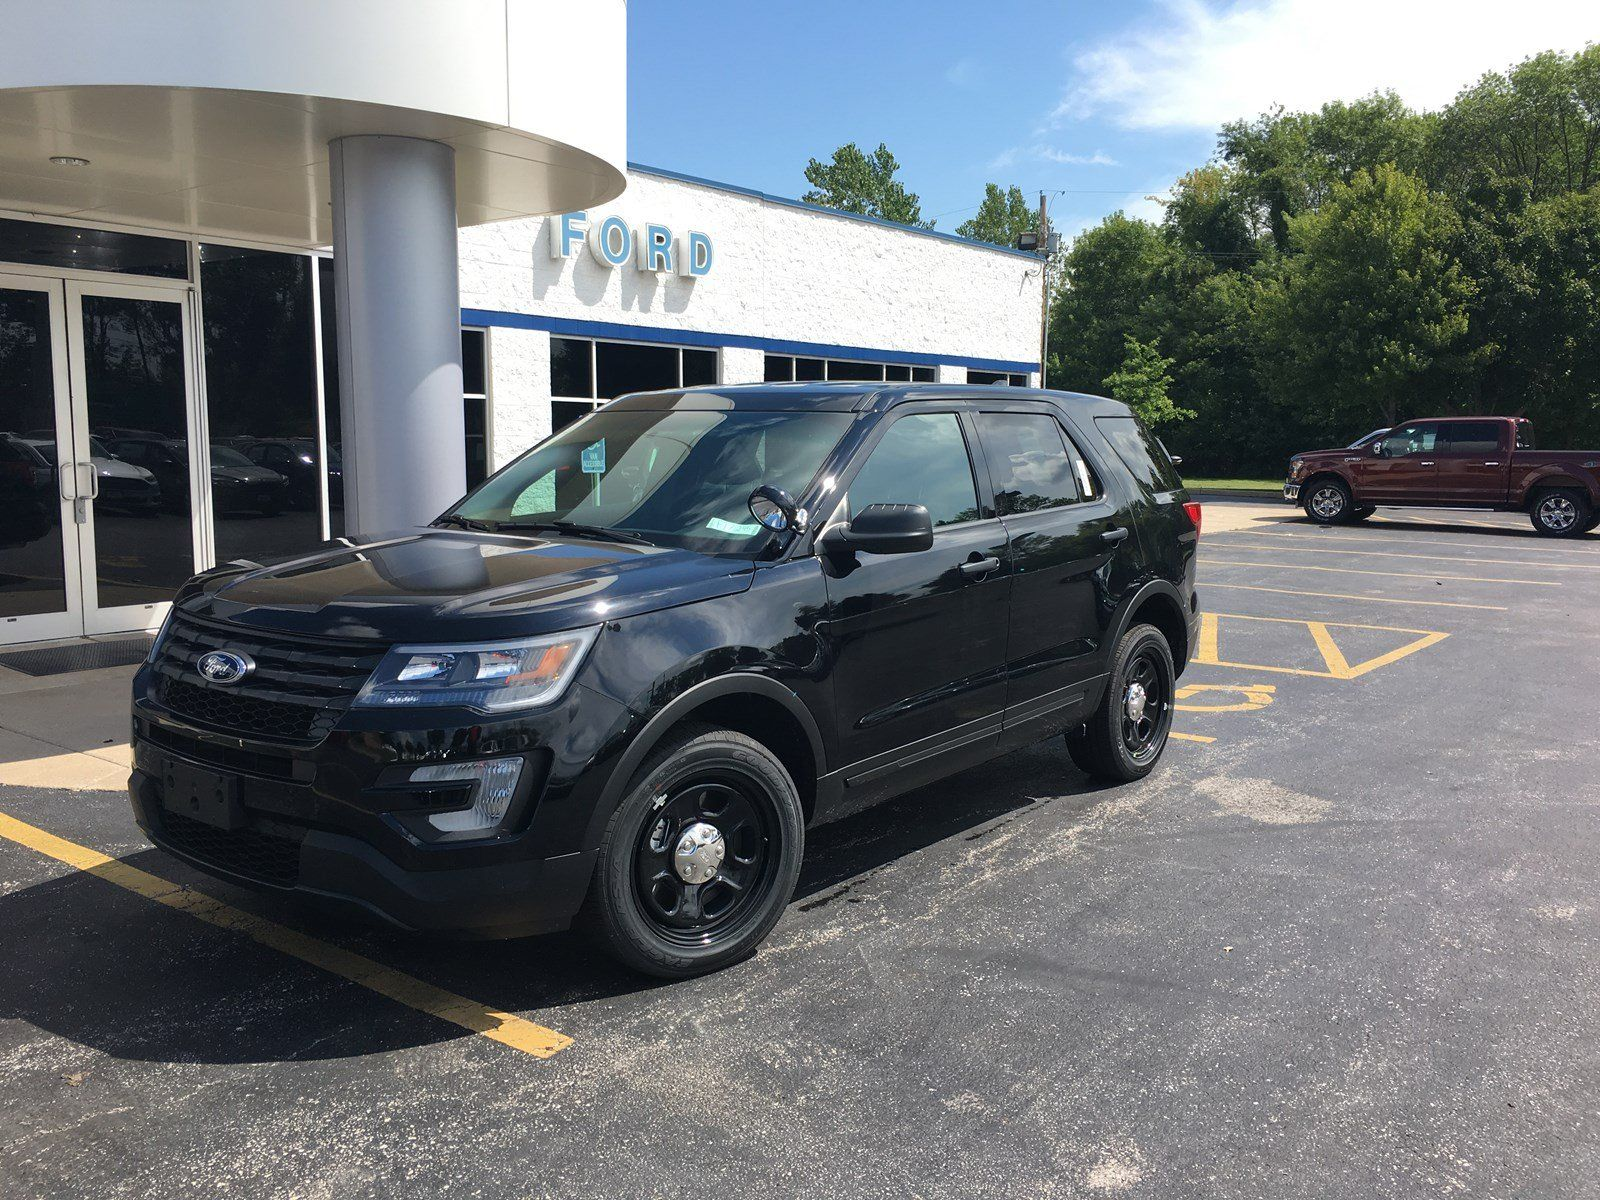 New 2017 Ford Explorer 4wd Police Interceptor Sport Utility For